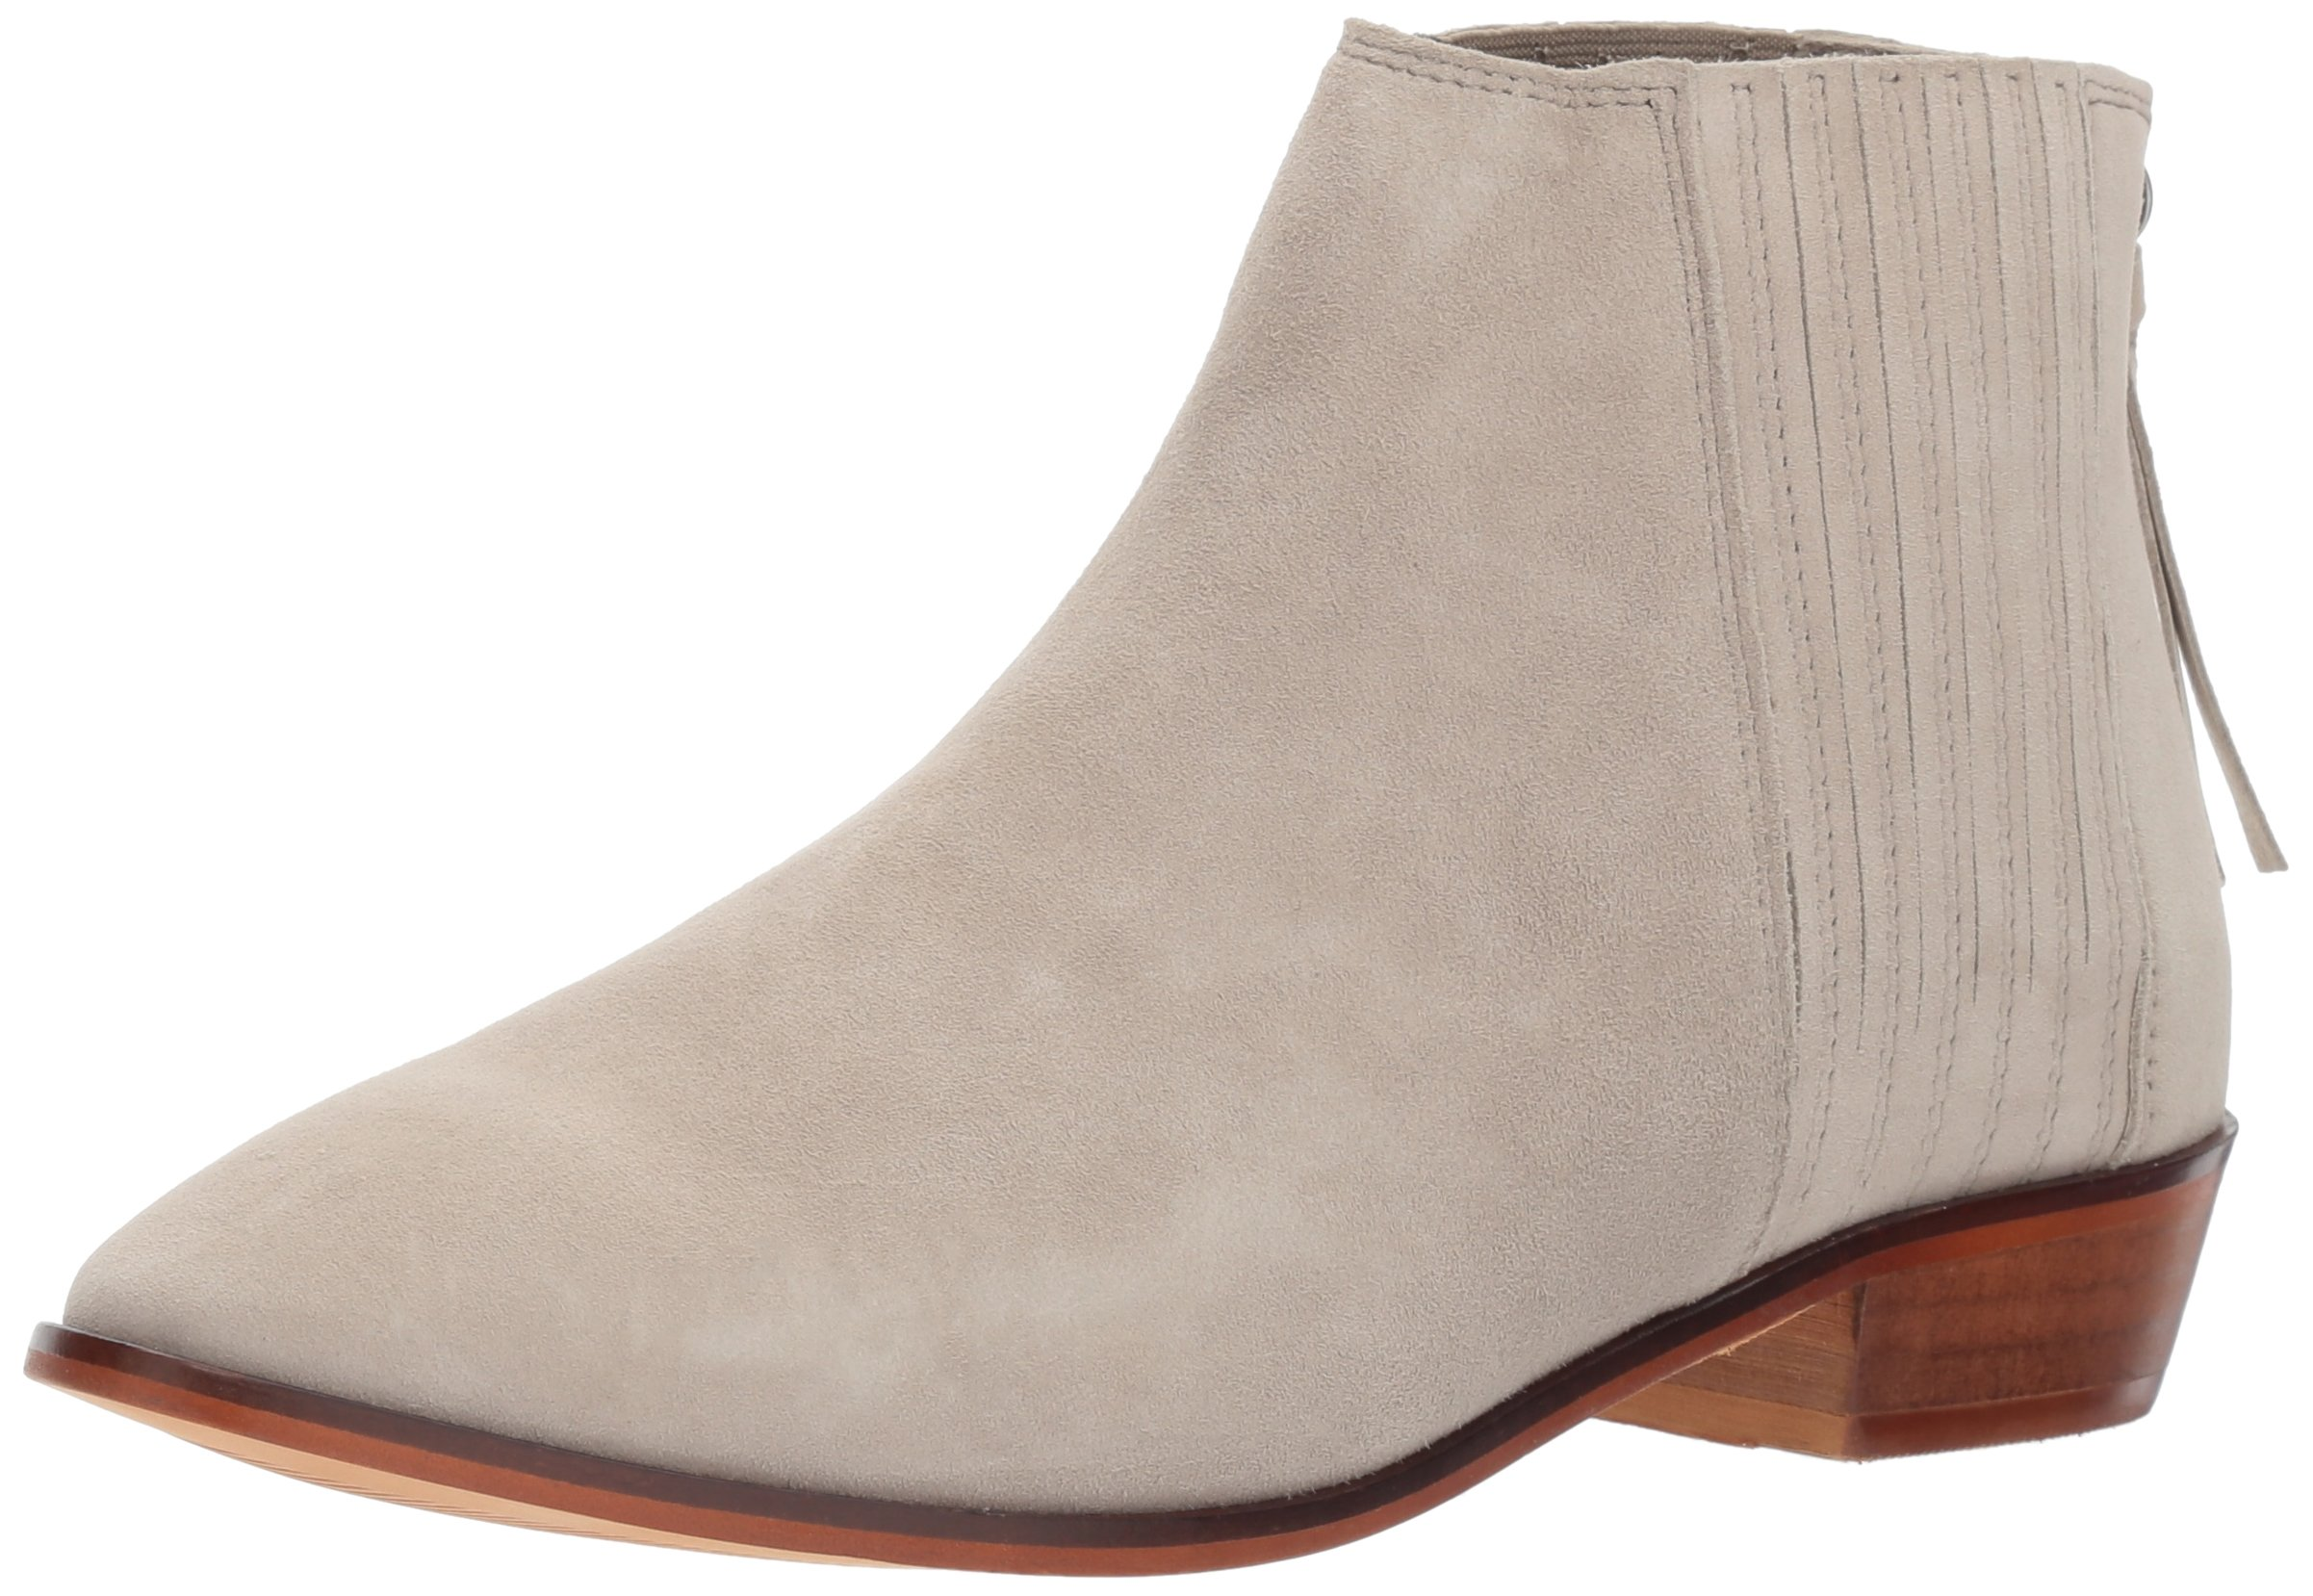 Kenneth Cole REACTION Women's Loop-y Flat Finger Gusset Suede Ankle Bootie